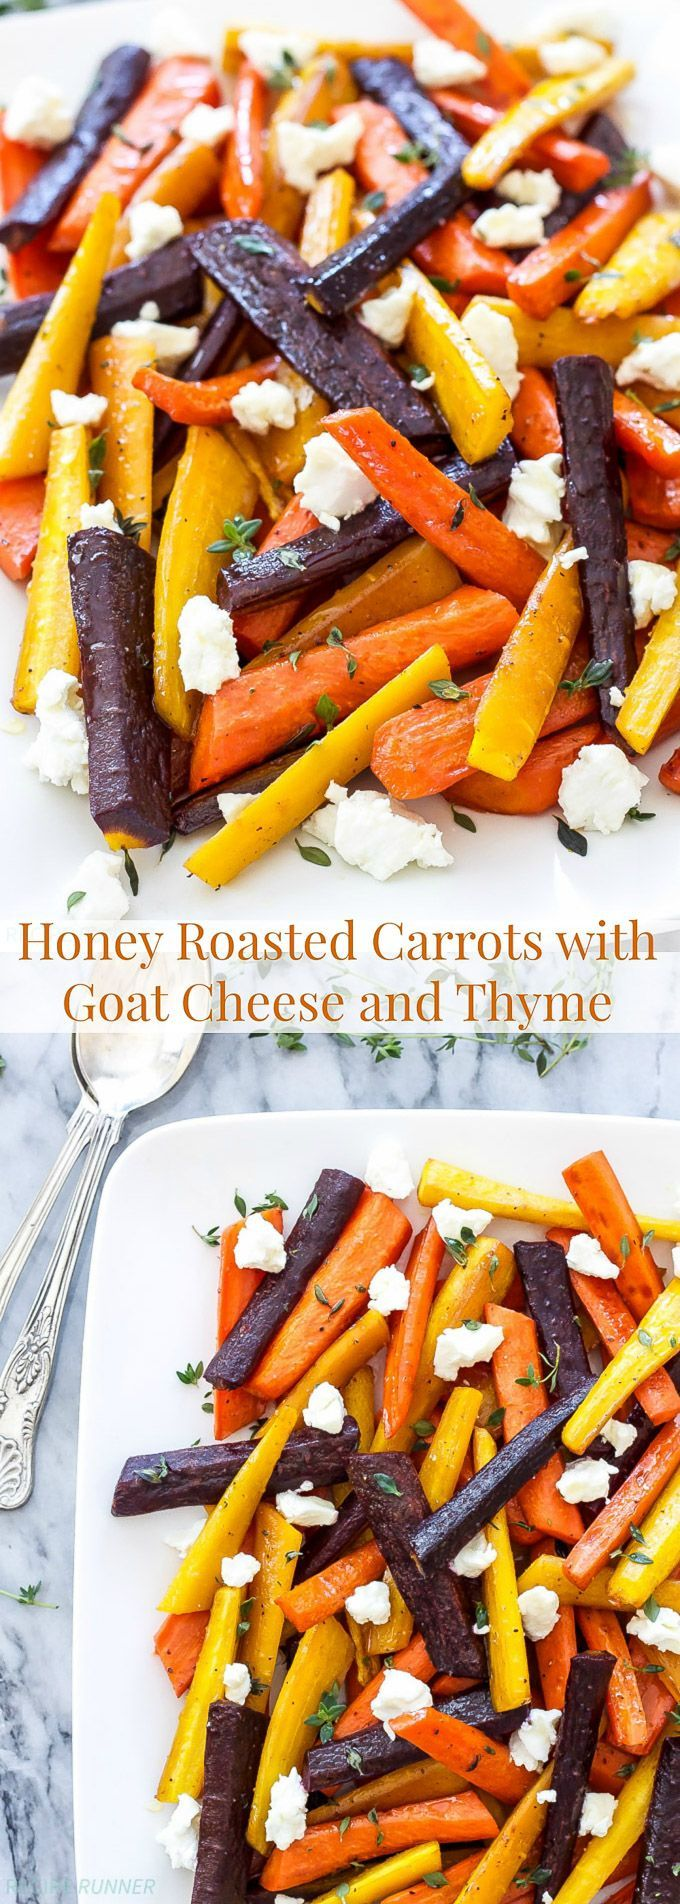 Carrots get a big boost of flavor in this easy to make side dish! Colorful, sweet, savory and perfect for this year's Thanksgiving table!